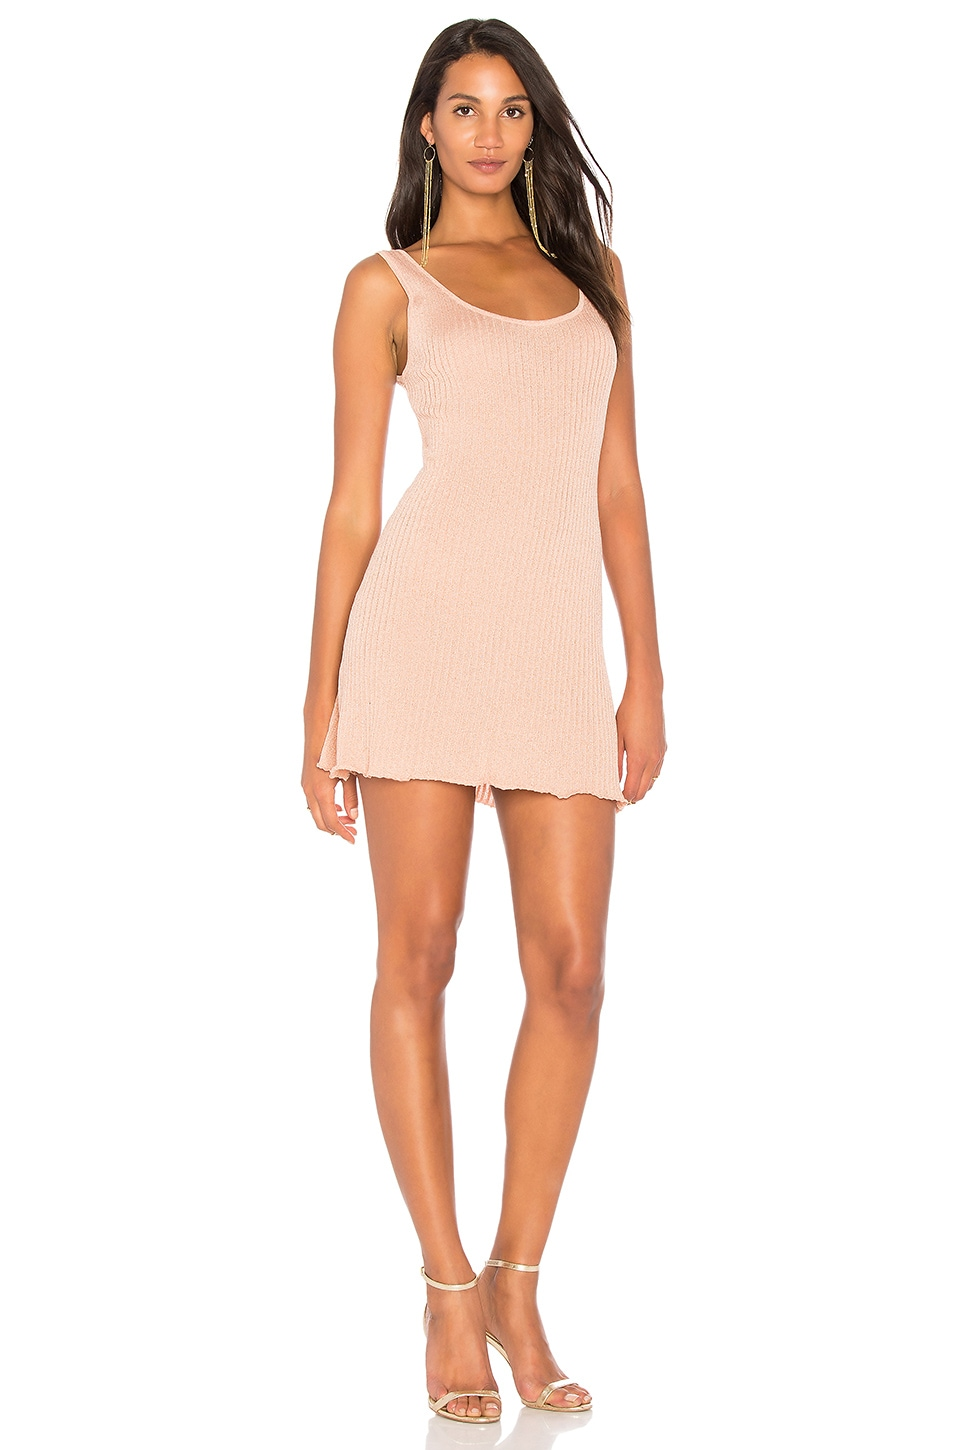 LPA x REVOLVE Dress 295 in Rose Gold